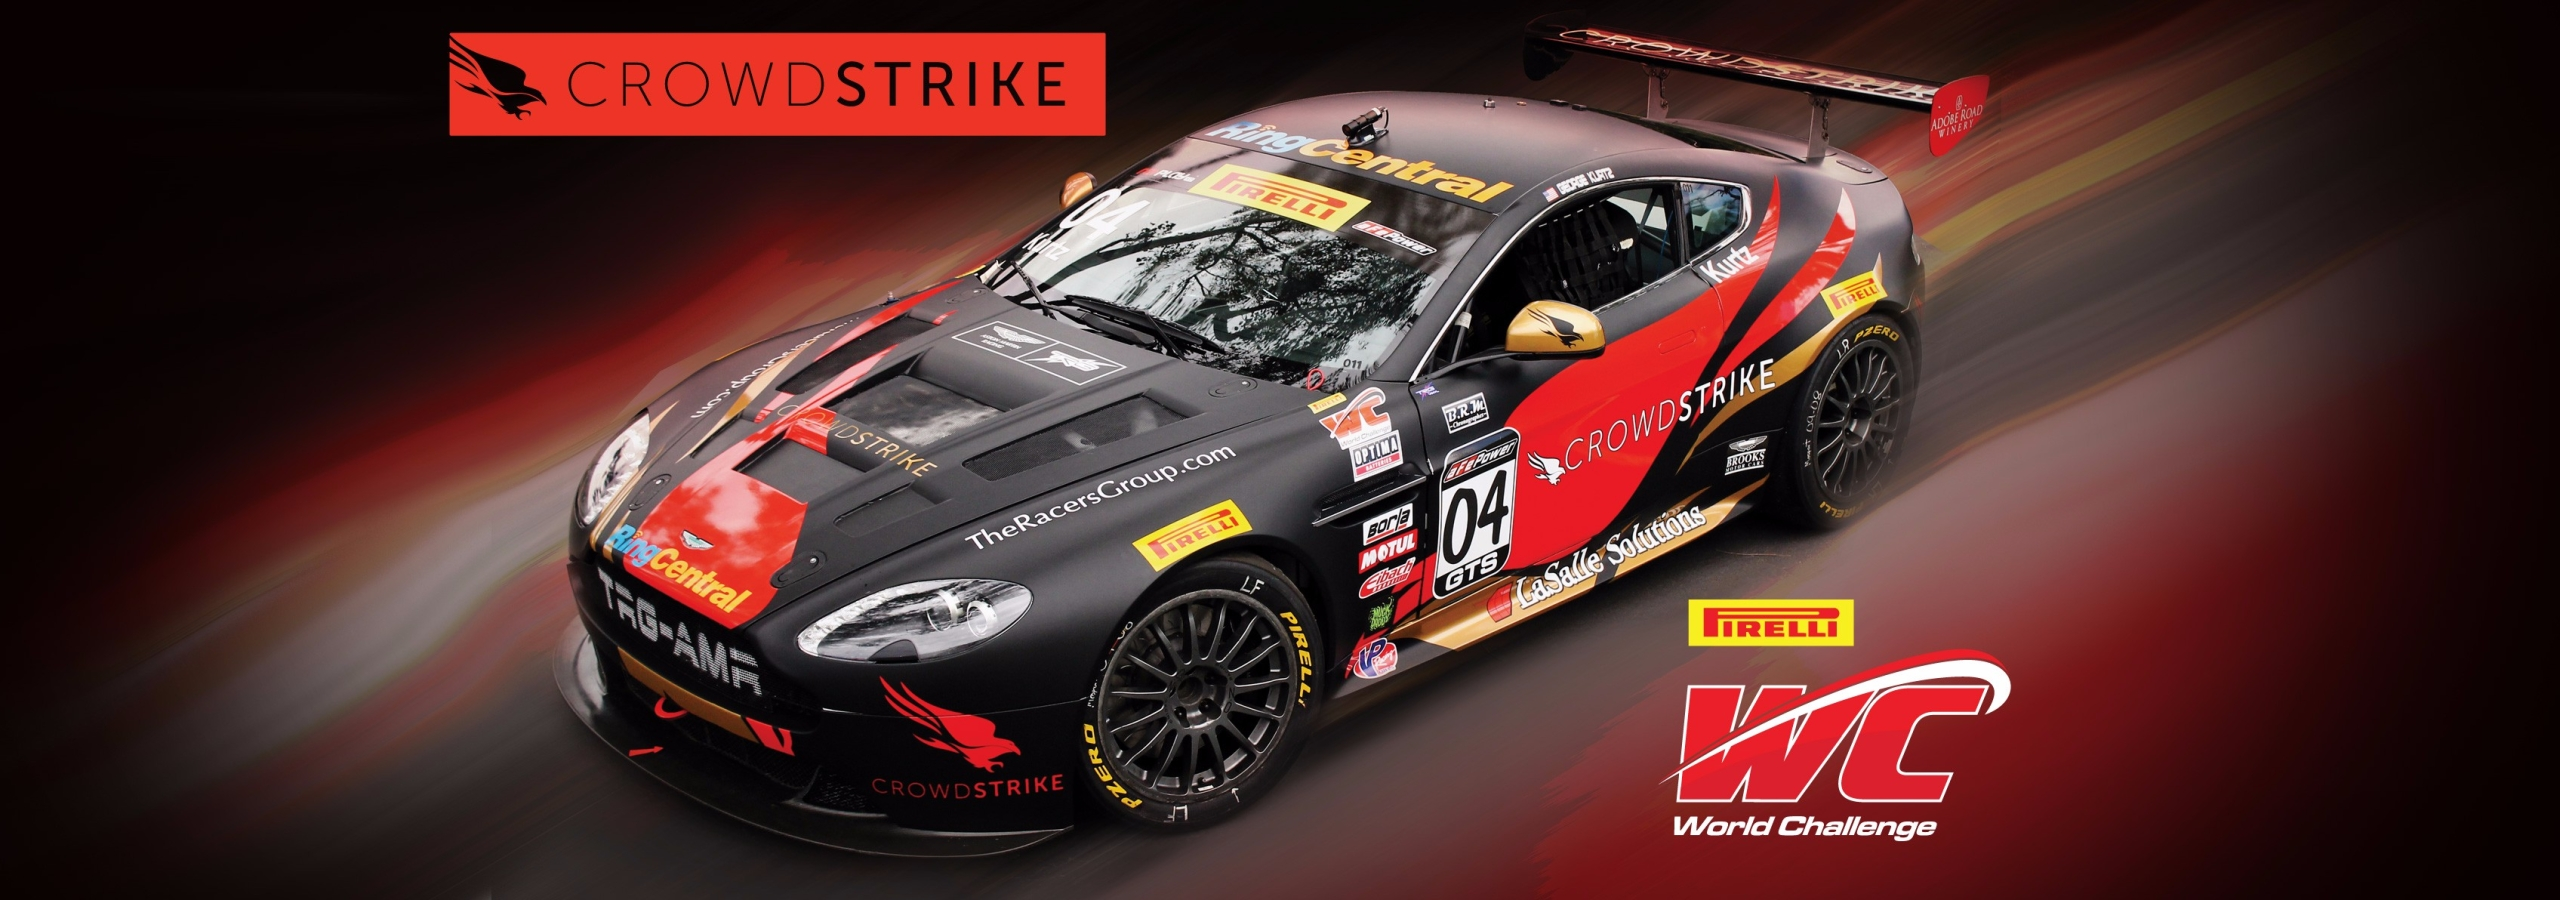 TRG-Aston Martin Racing, CrowdStrike CEO George Kurtz Partner for Pirelli World Challenge